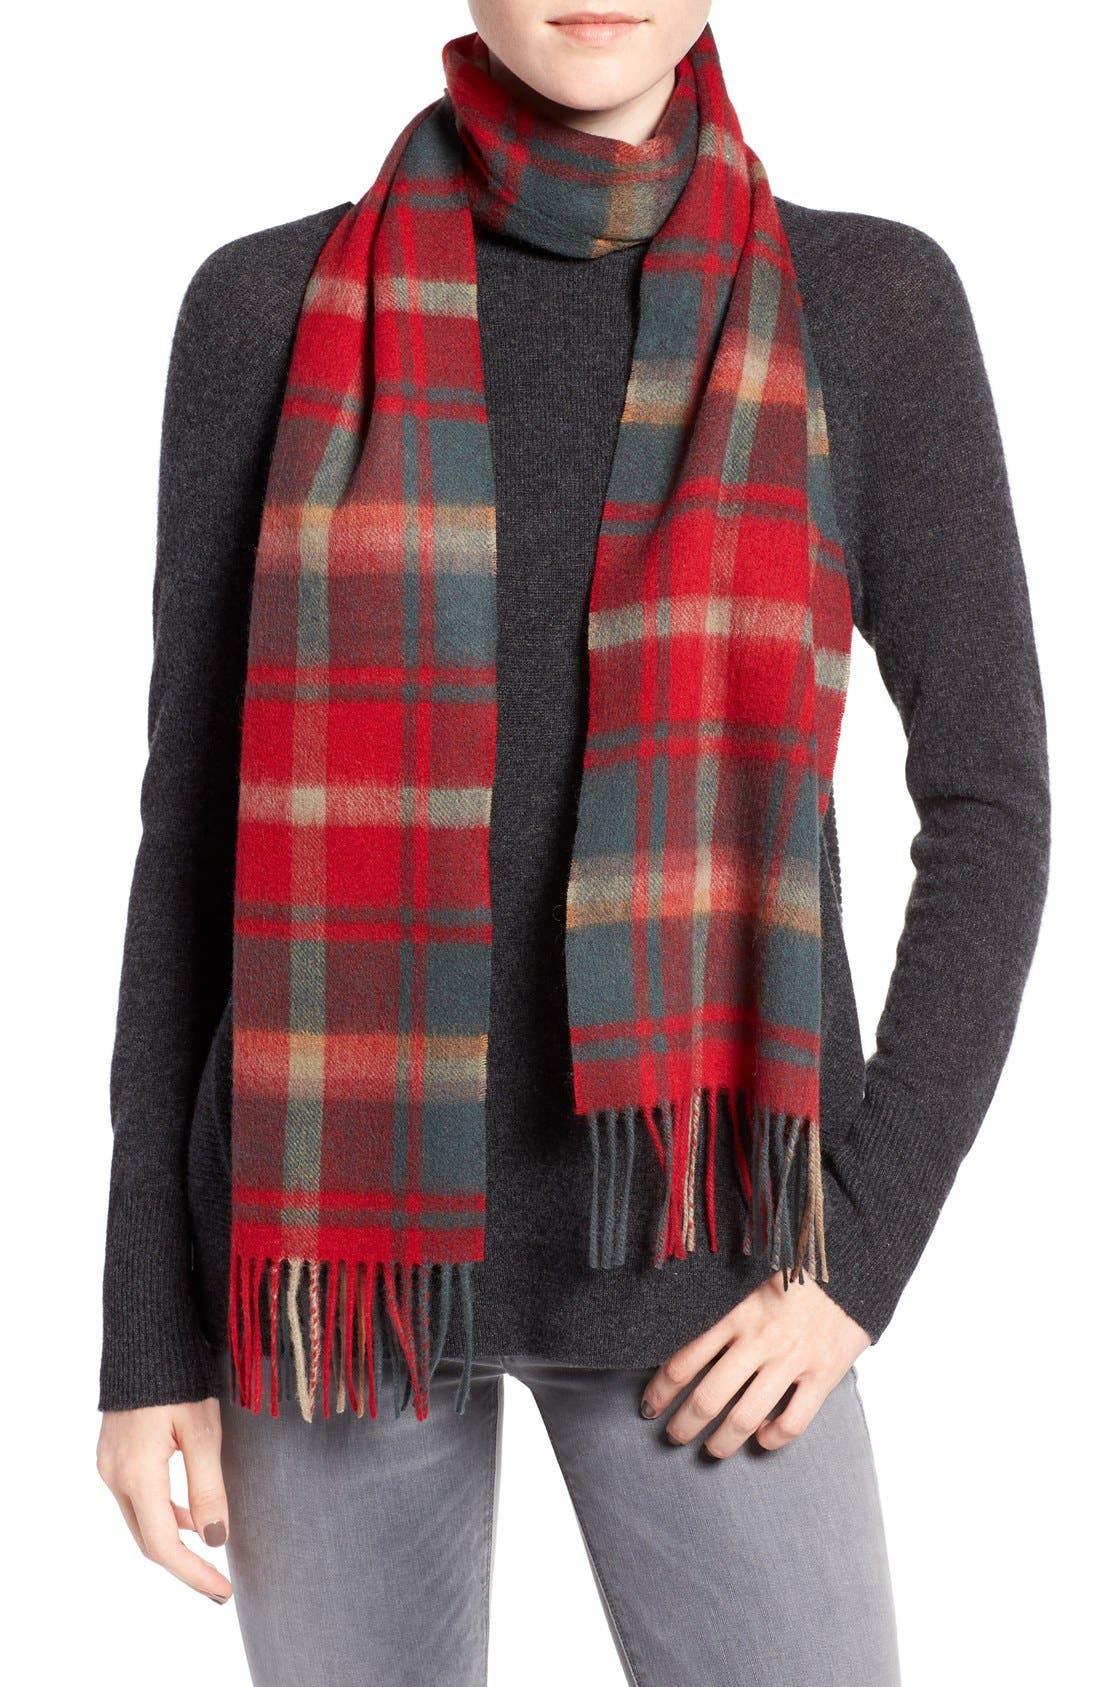 BARBOUR, 'Shilhope' Plaid Wool Scarf, Main thumbnail 1, color, 201